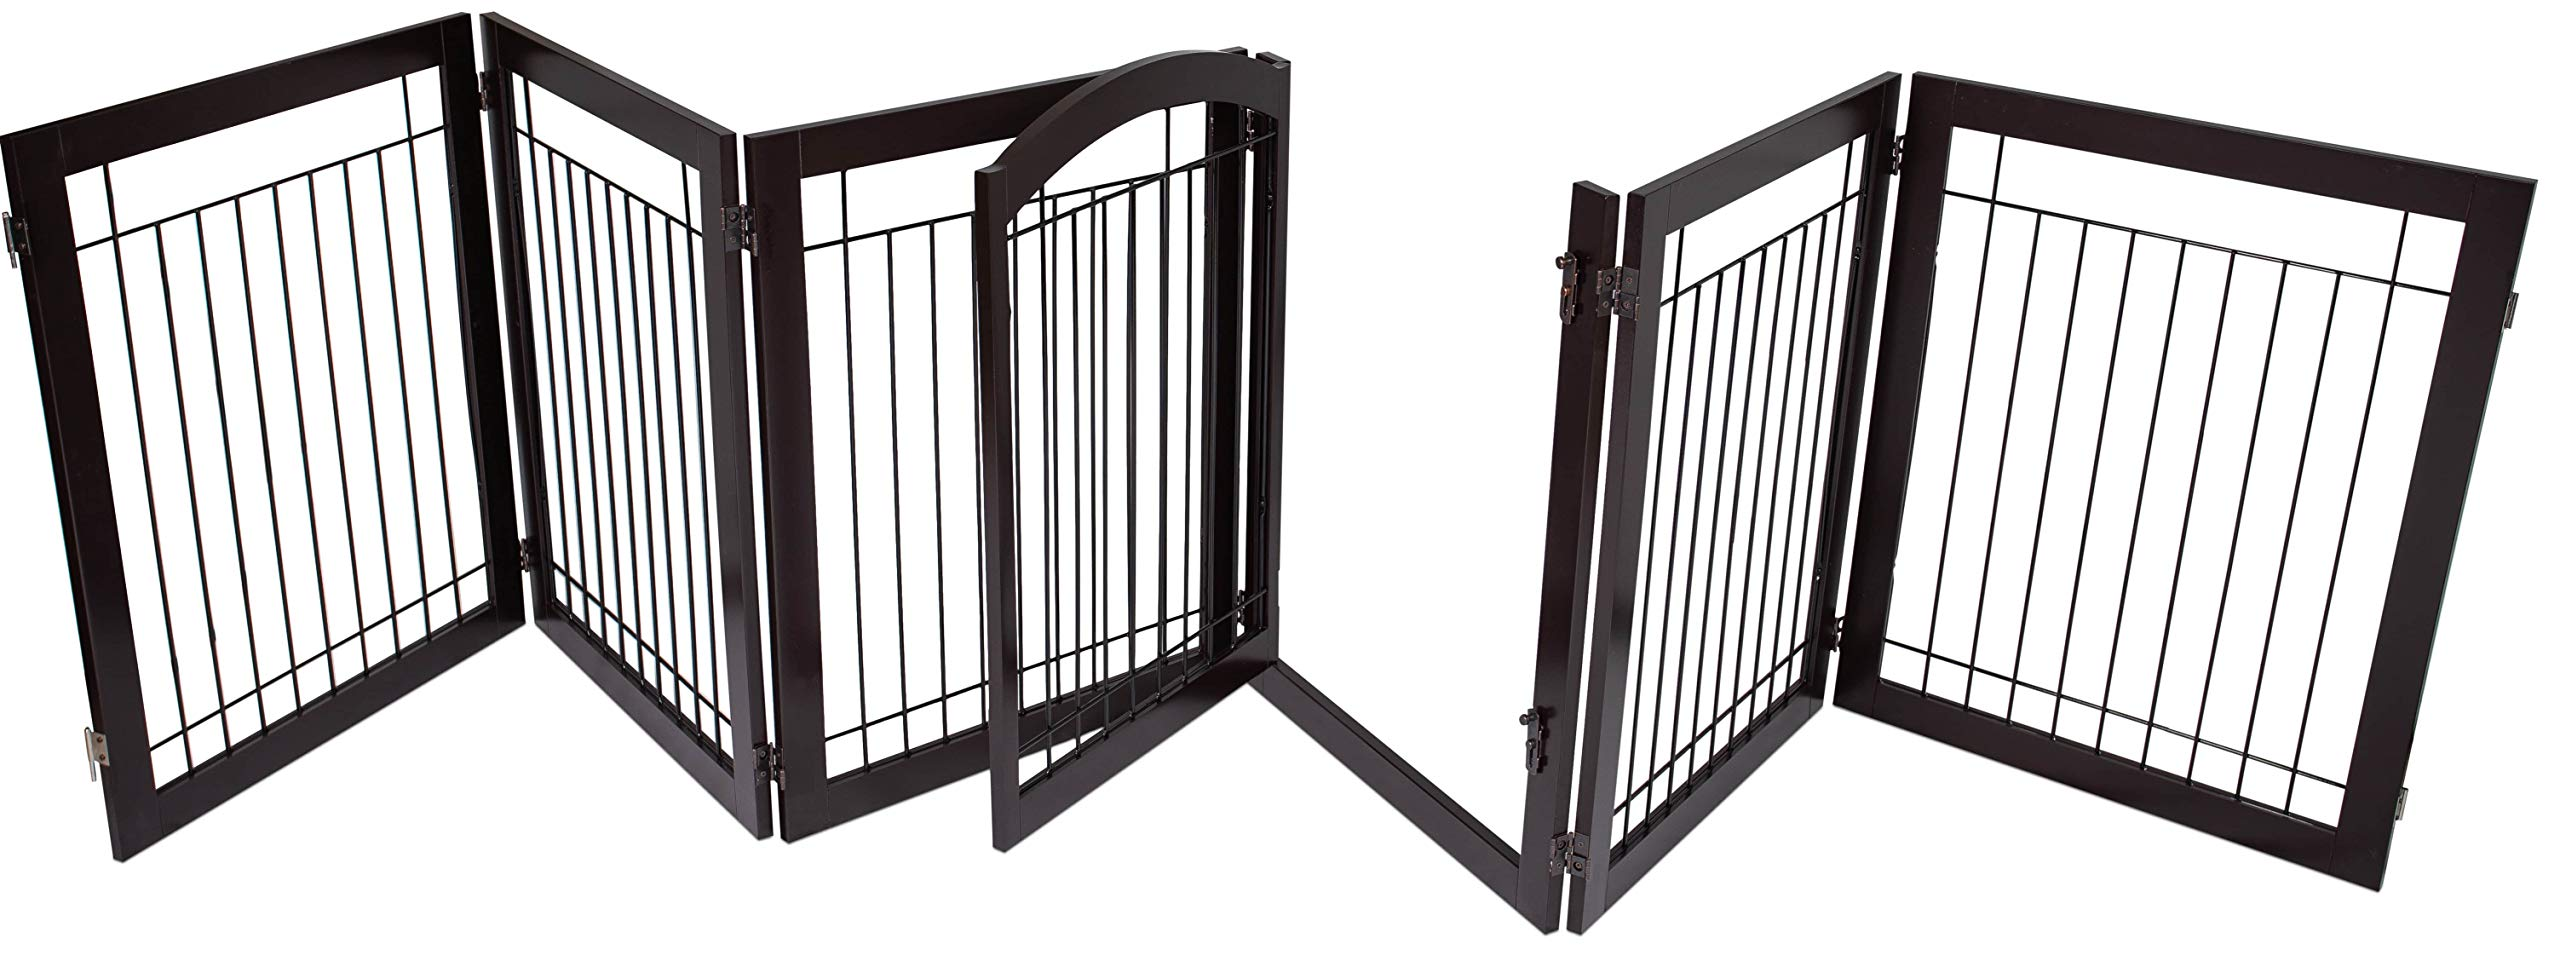 BIRDROCK HOME Indoor Dog Gate with Door - 6 Panel - 30 Inch Tall - Enclosure Kennel Pet Puppy Safety Fence Pen Playpen - Durable Wooden and Wire - Folding Z Shape Free Standing - Espresso by BIRDROCK HOME